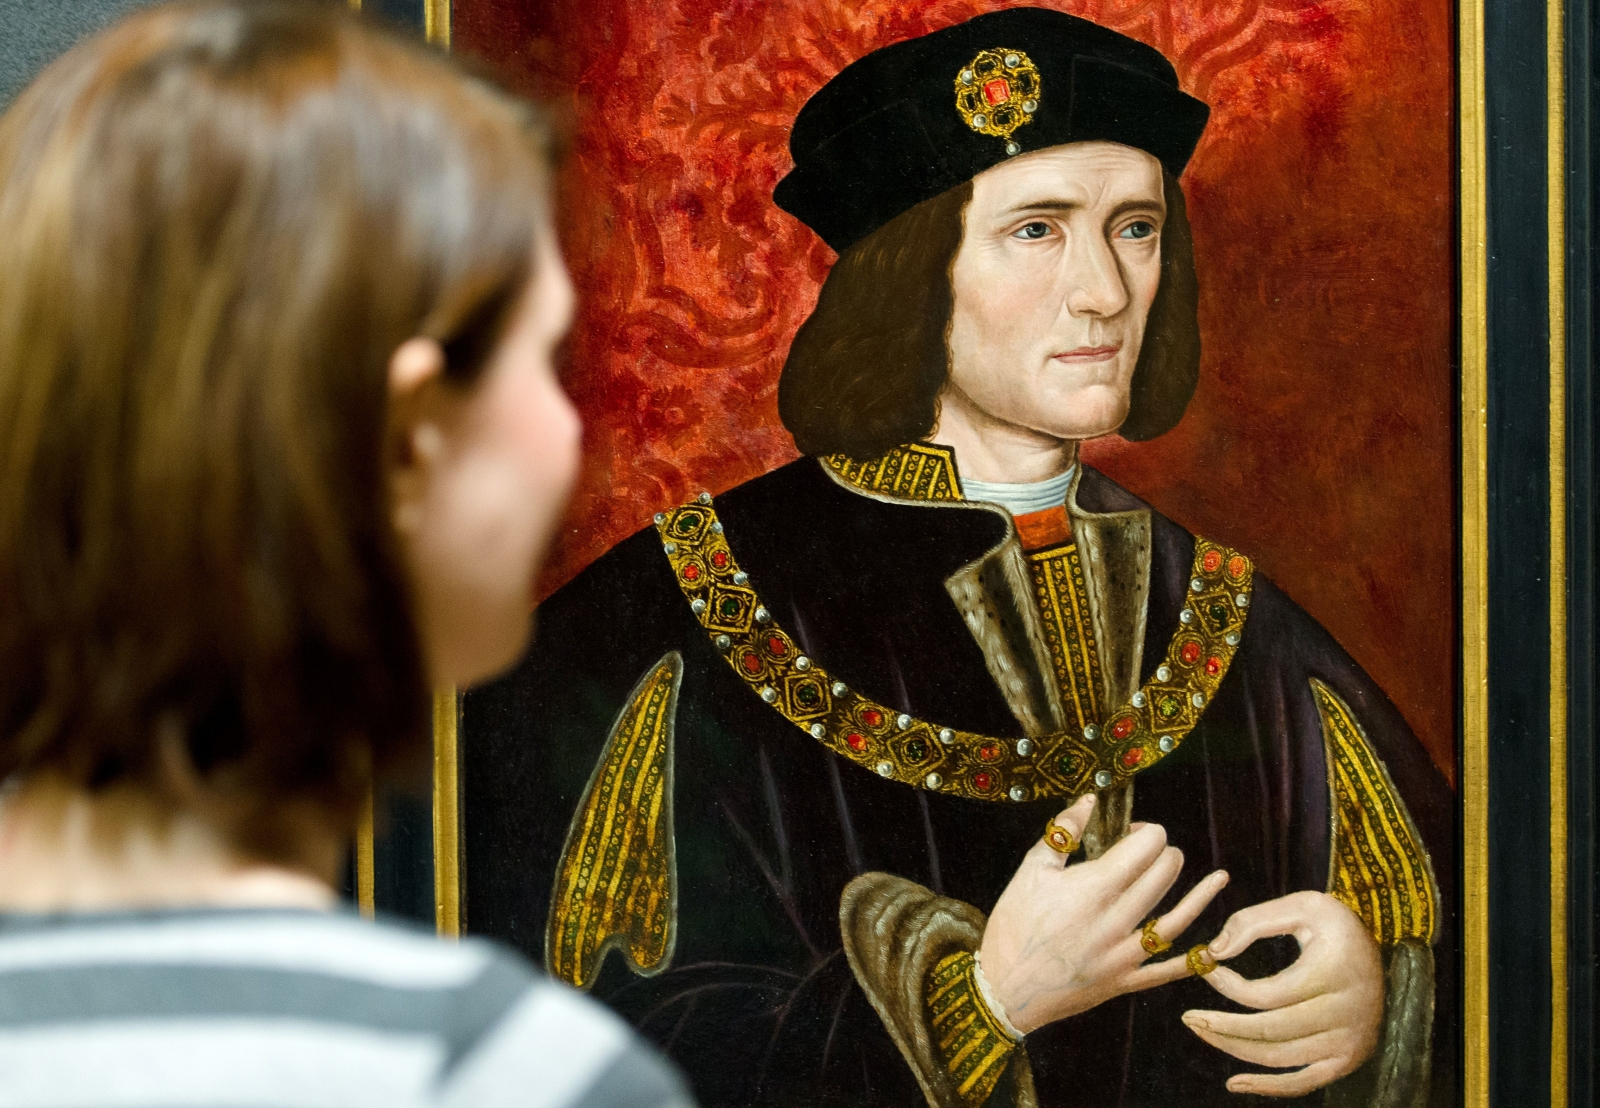 Richard III portrait